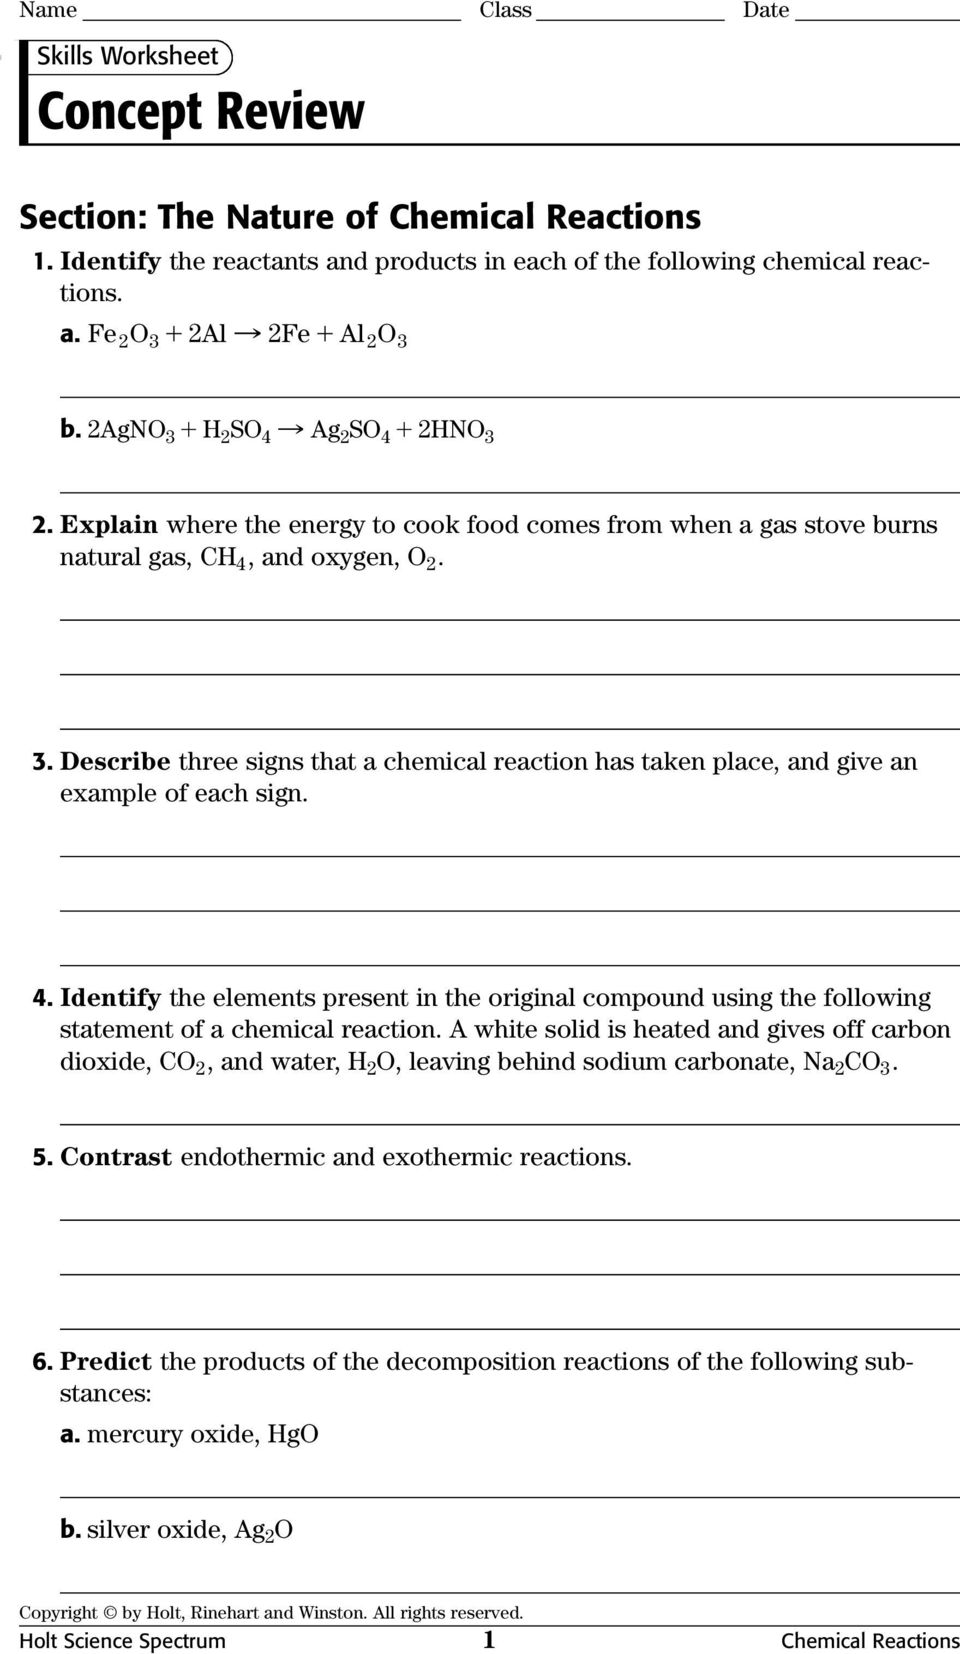 holt science spectrum heat and temperature worksheets answers. Black Bedroom Furniture Sets. Home Design Ideas